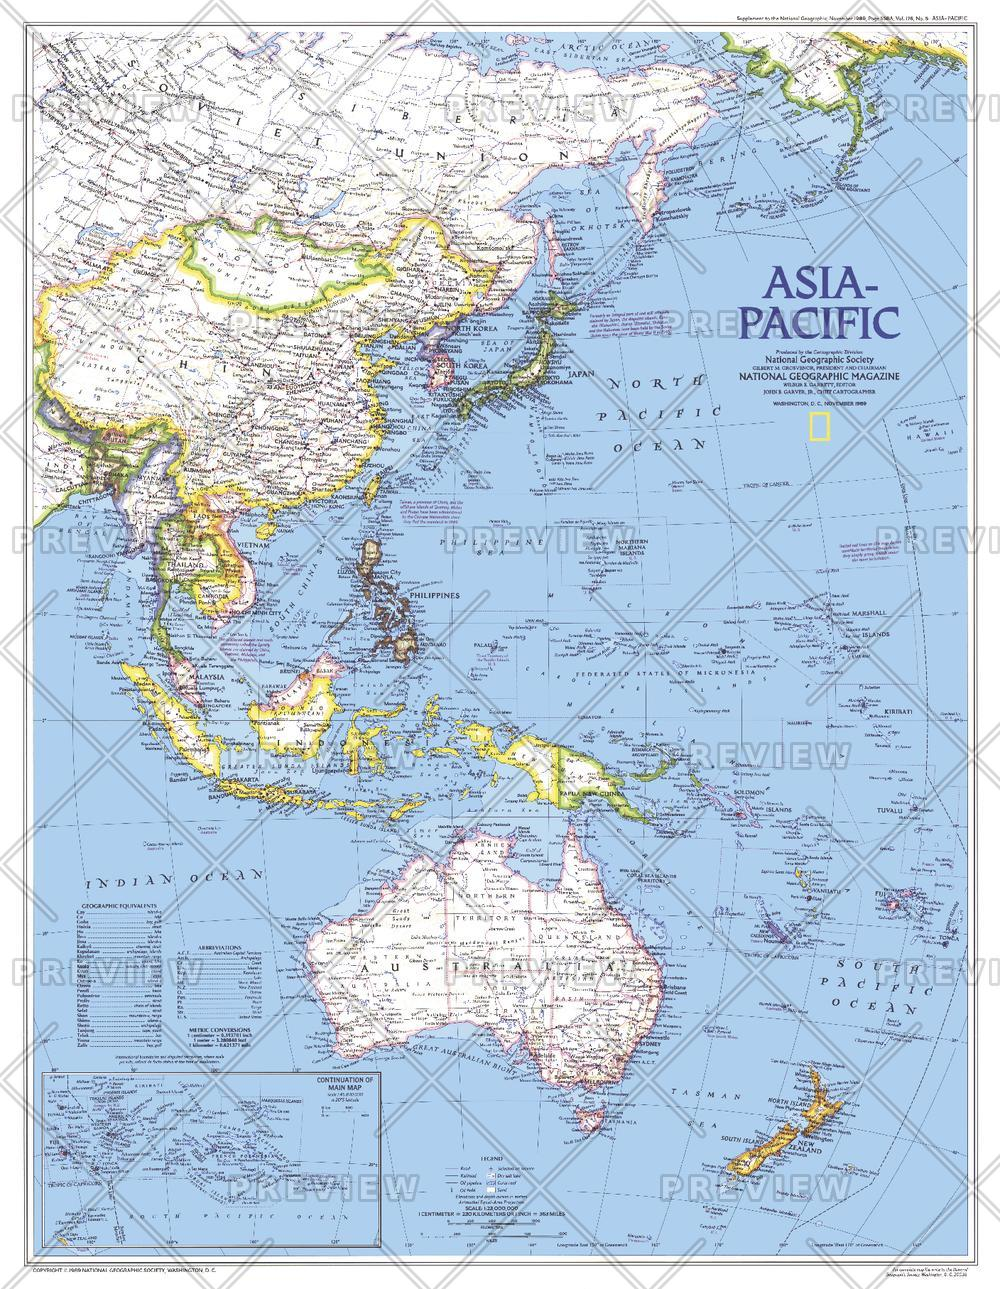 Asia-Pacific  -  Published 1989